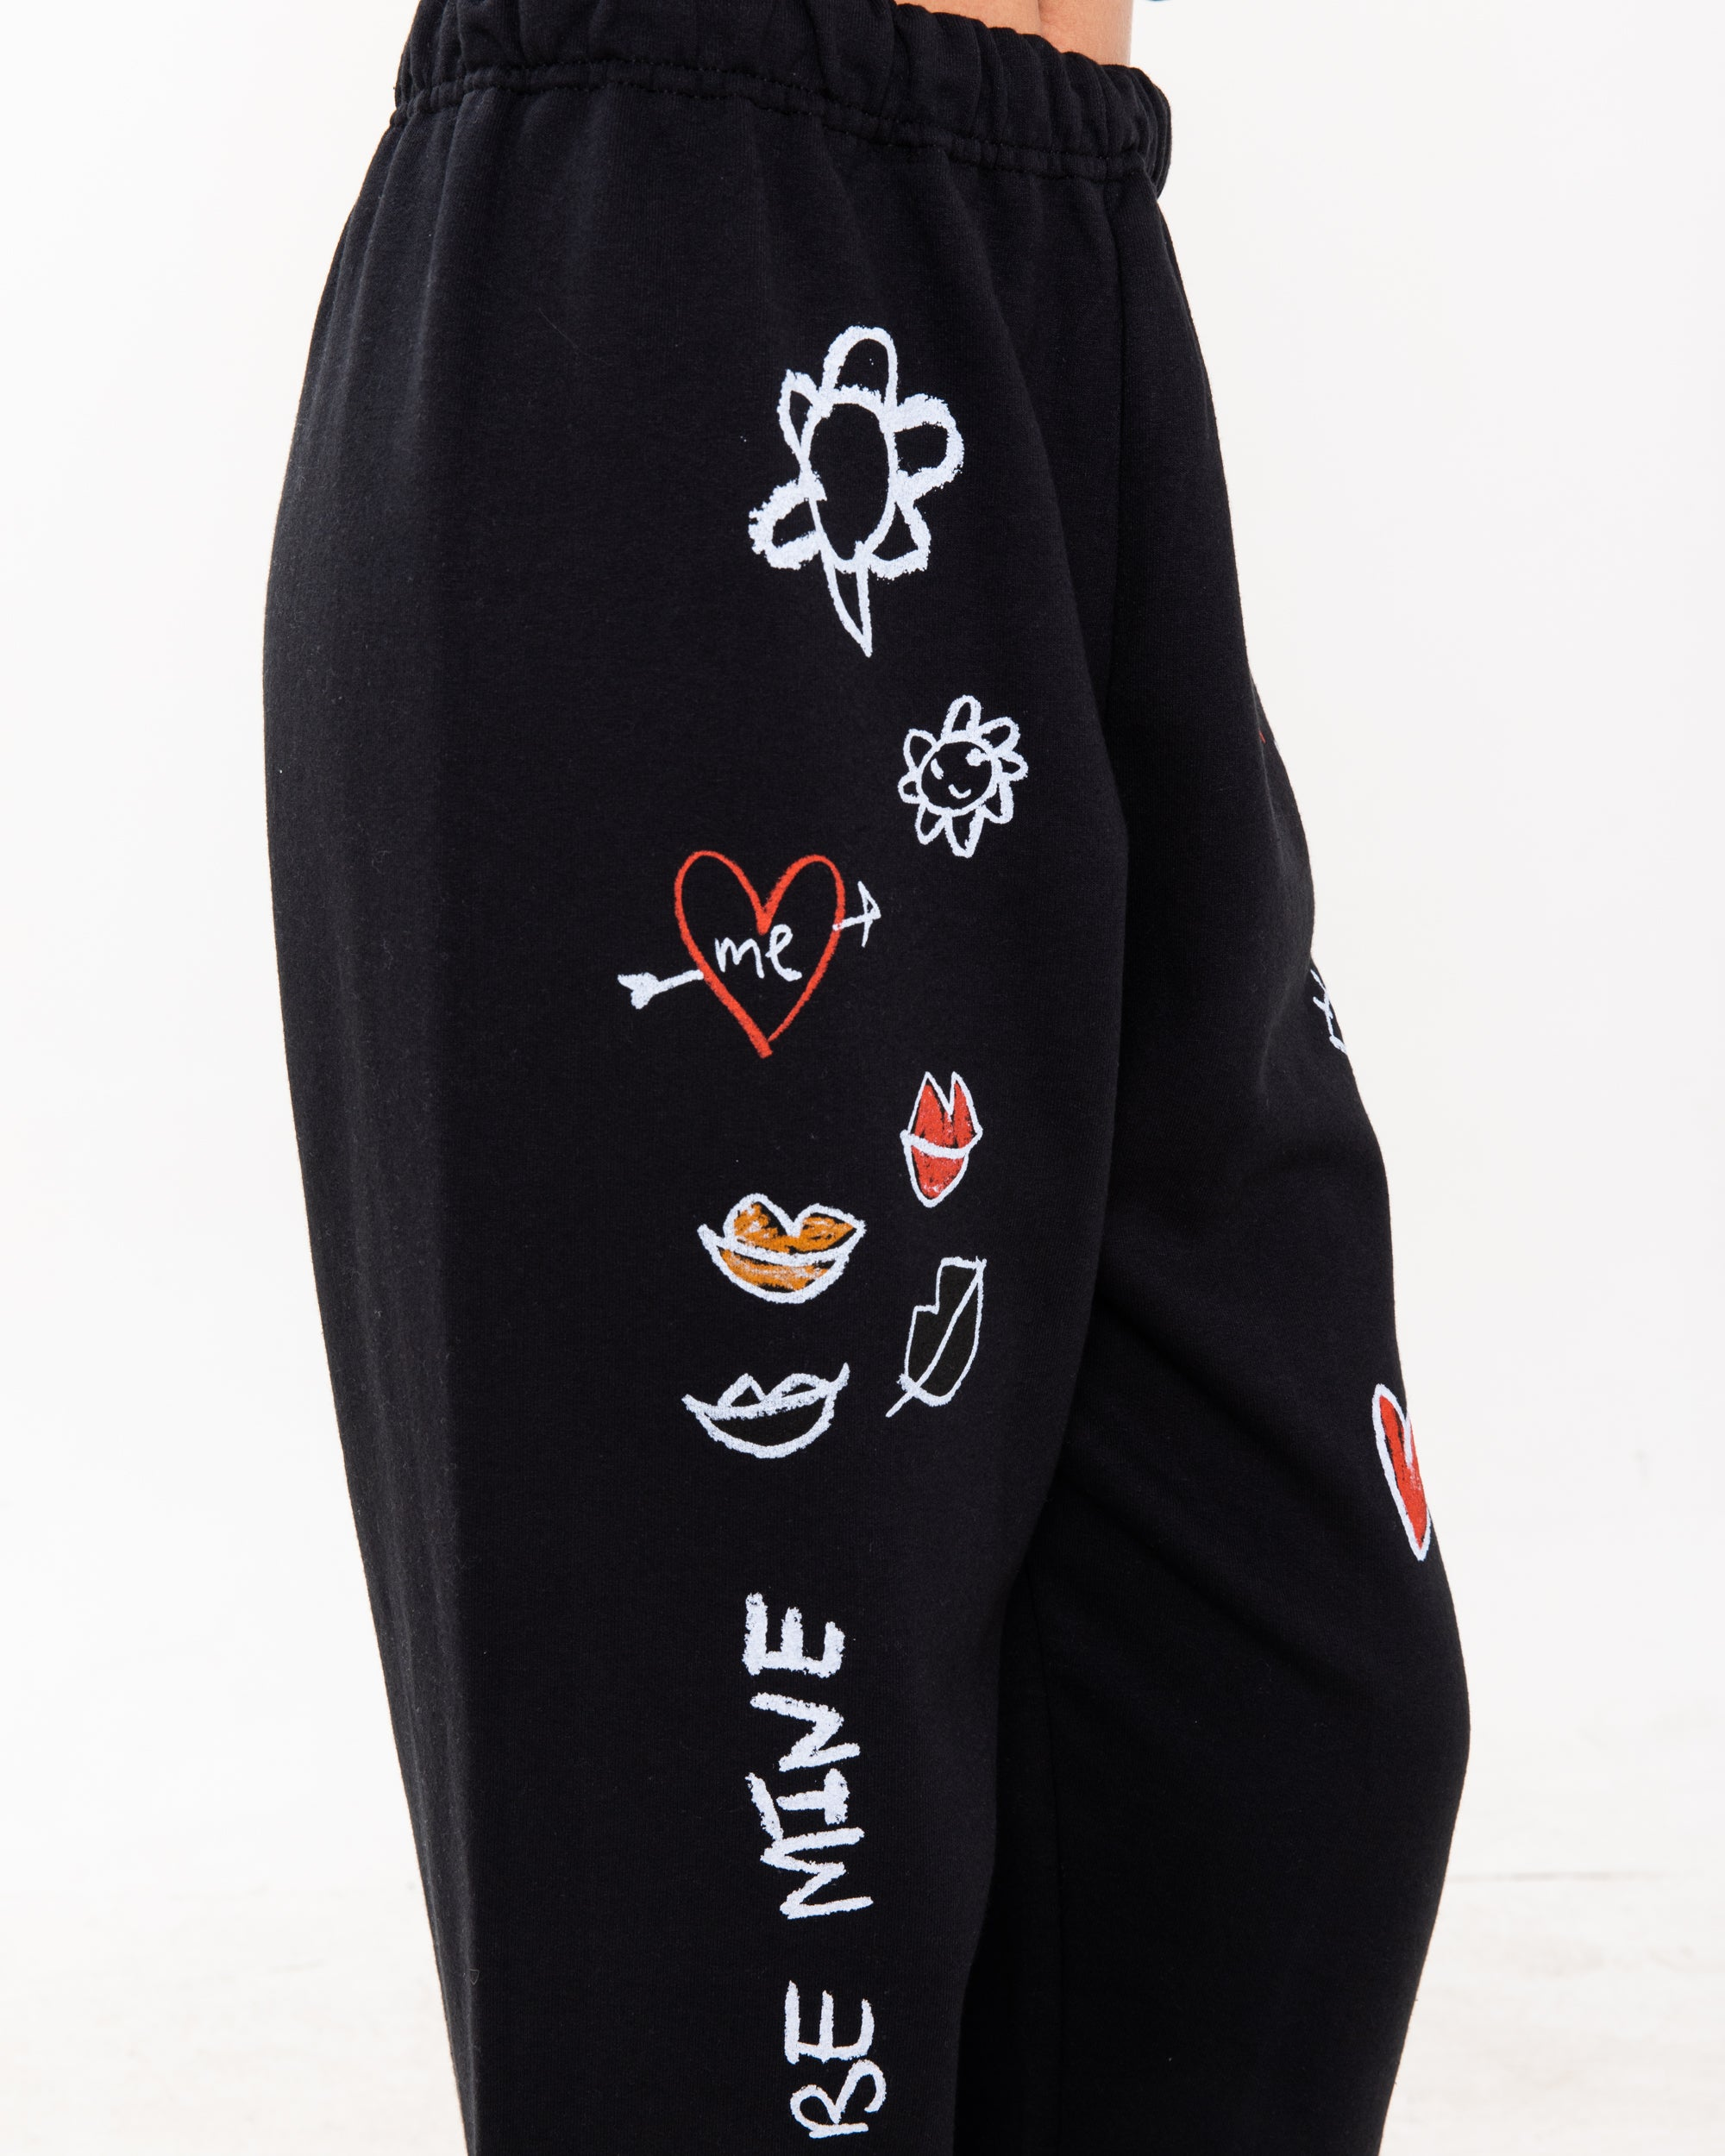 Chalkboard Black Sweatpants